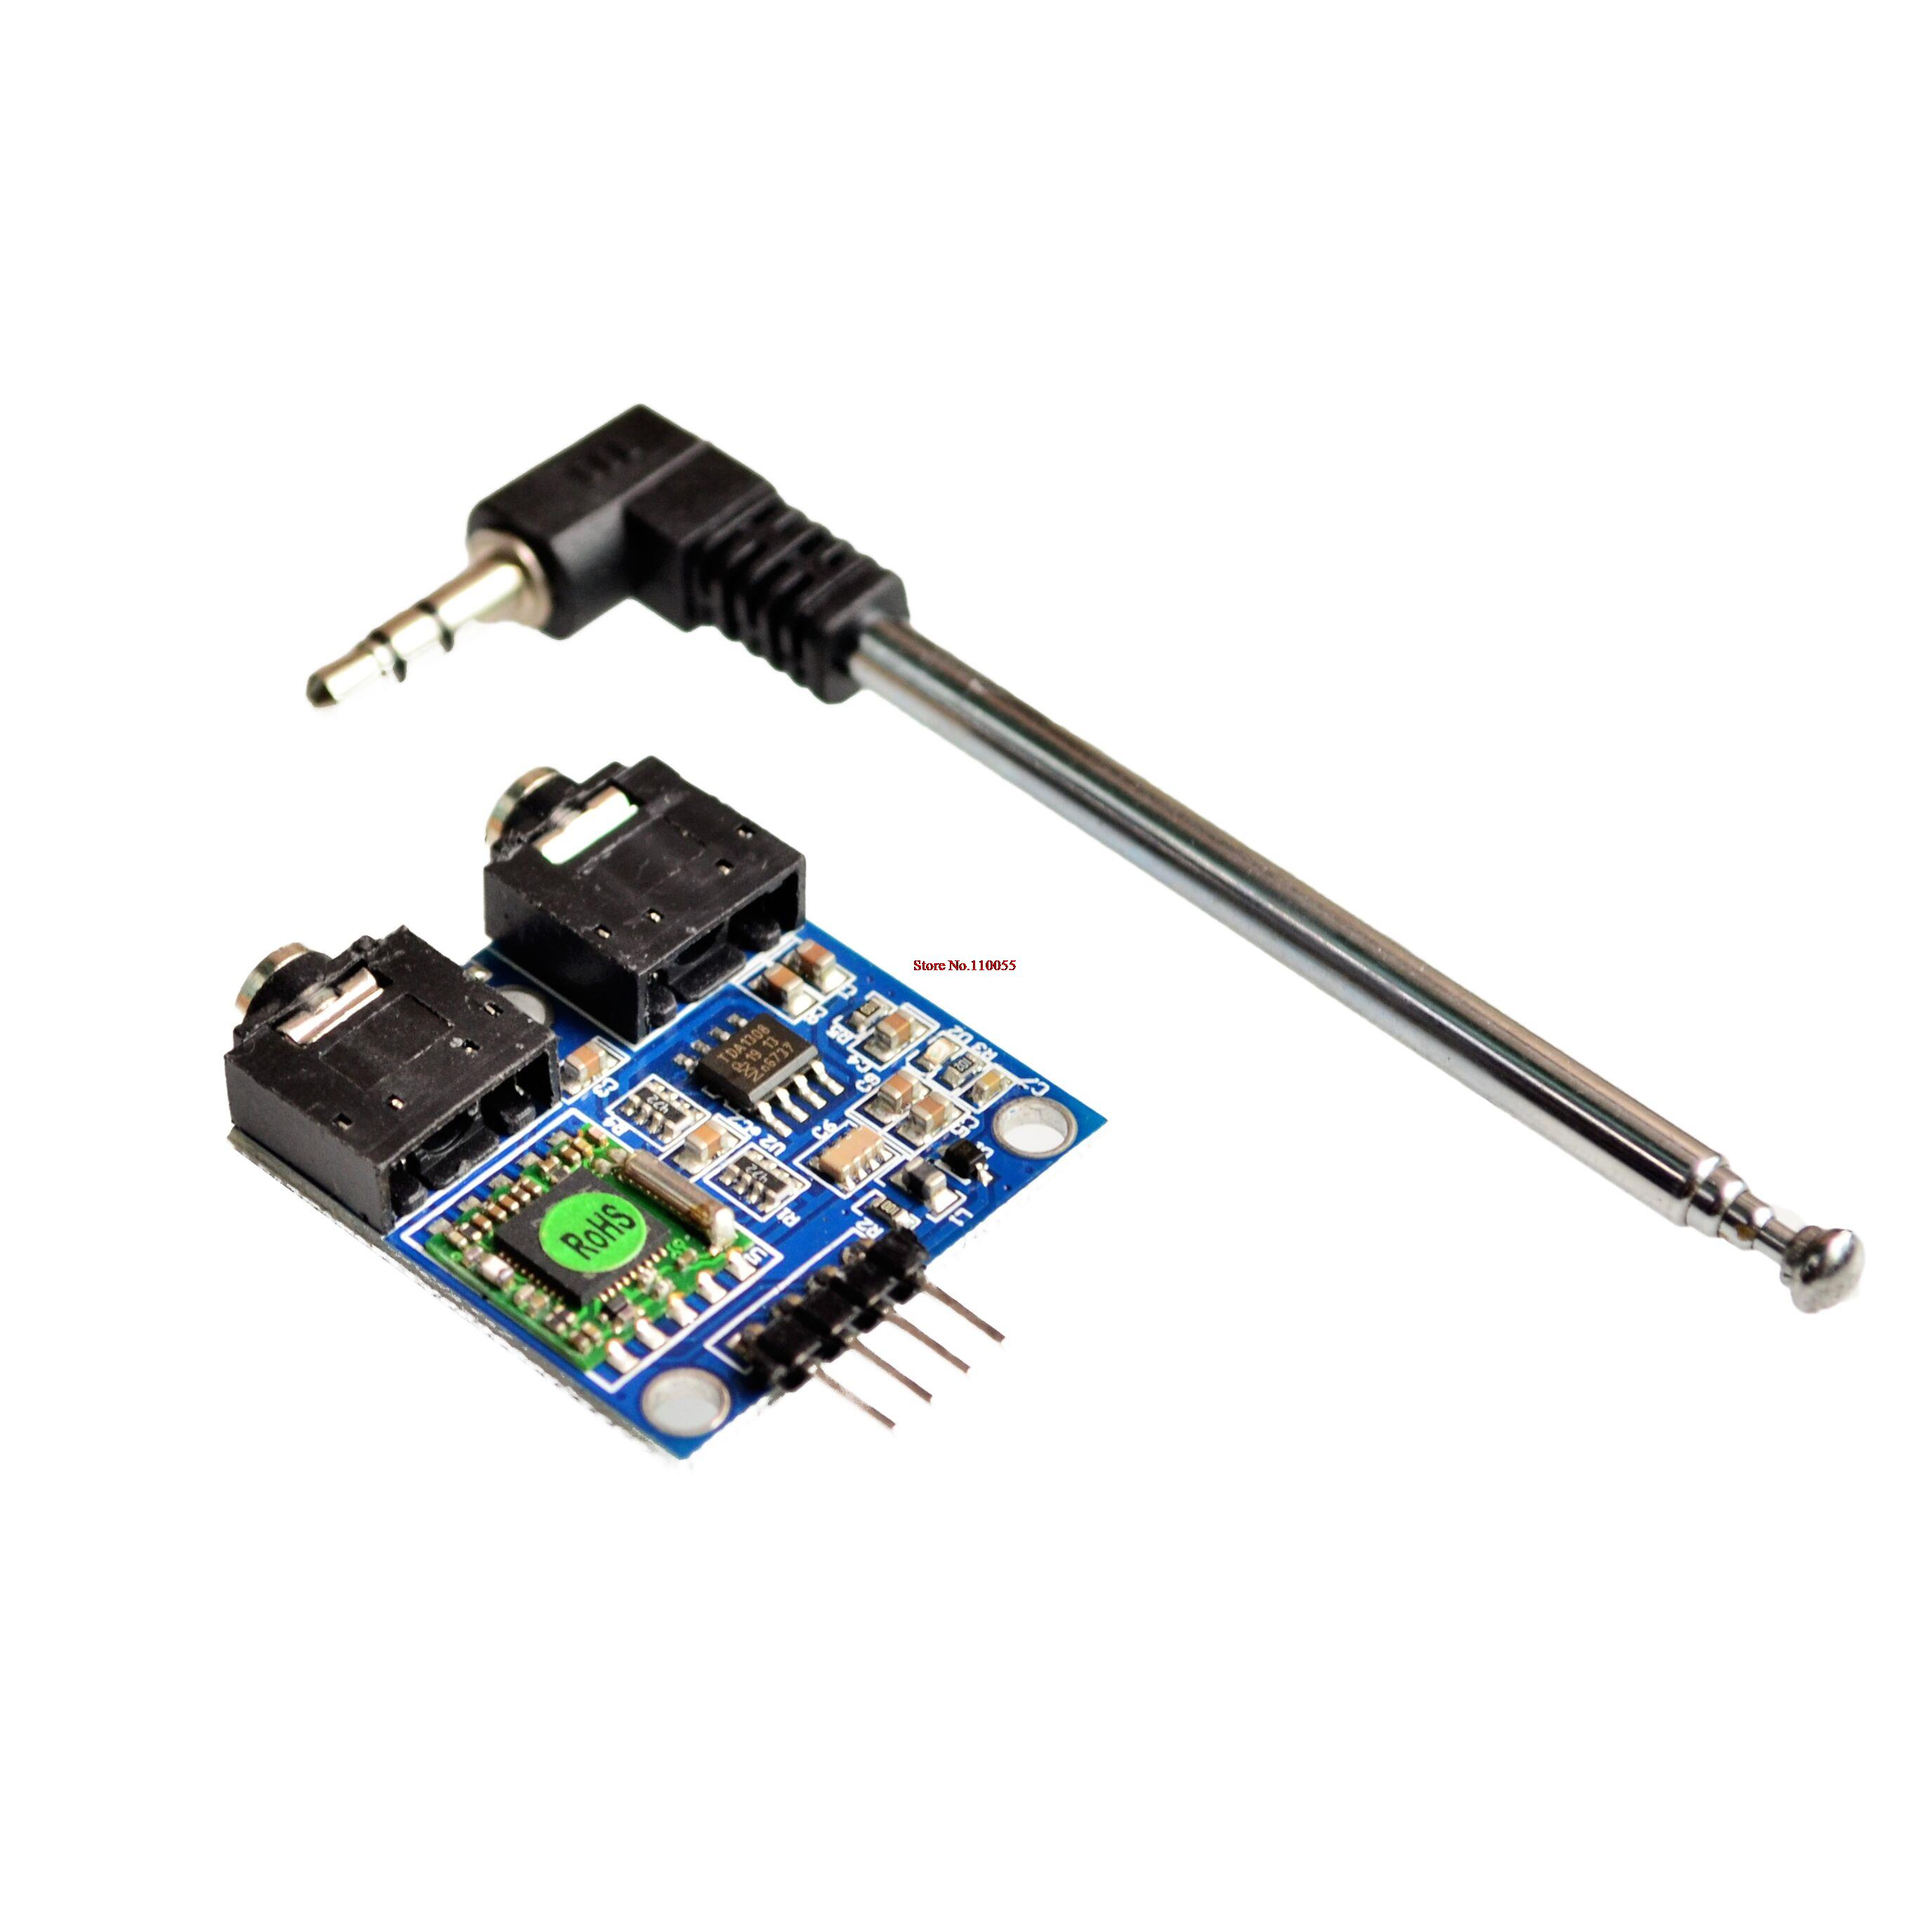 TEA5767 FM Stereo Radio Module for Arduino 76-108MHZ With Free Cable ...